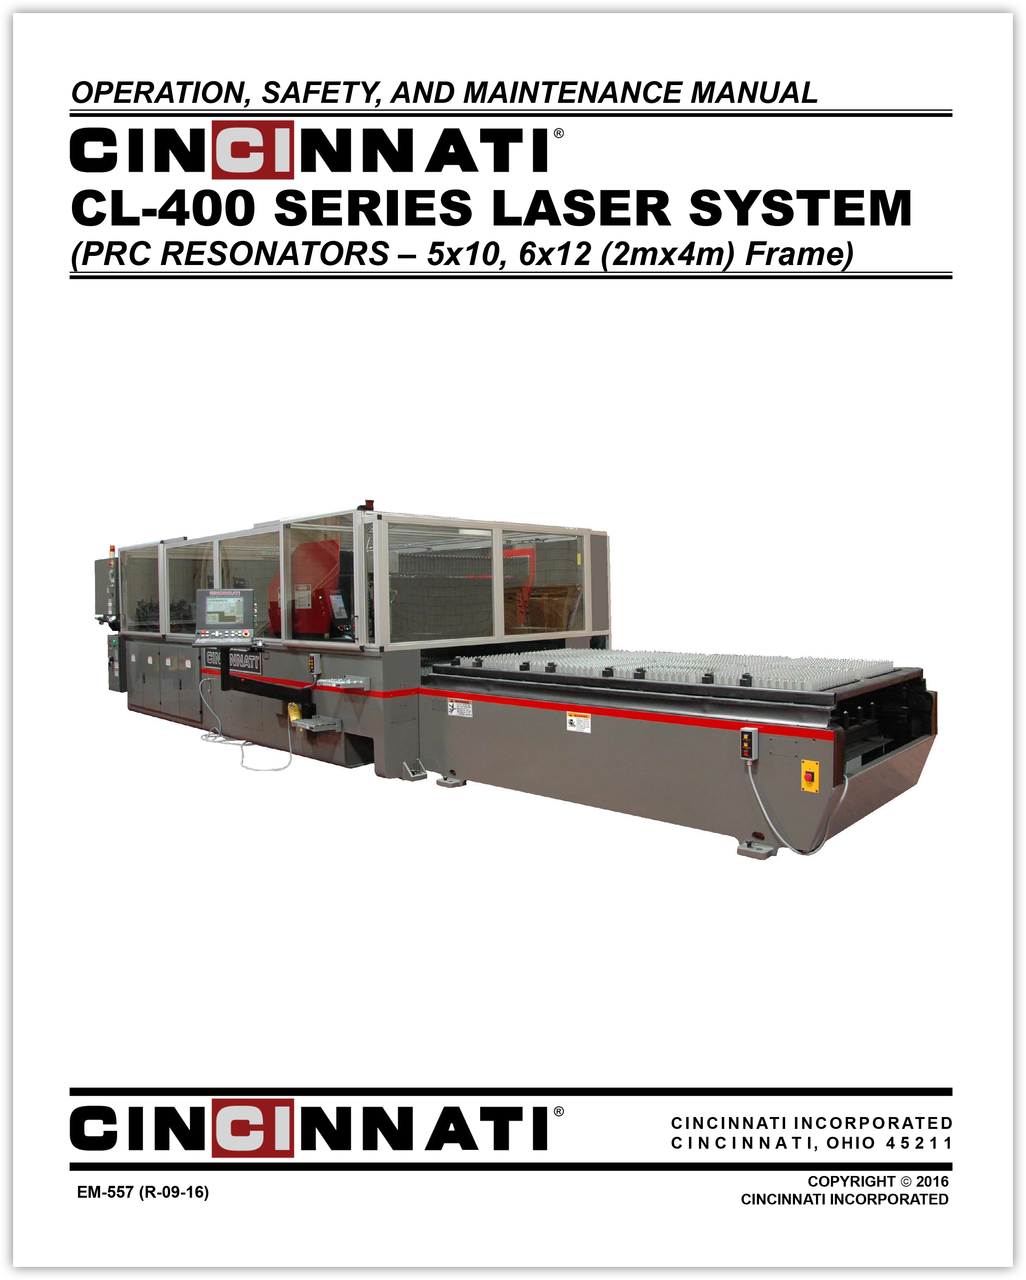 EM-557 (R-09-16) CL-400 Series Laser System_Operation, Safety and Maintenance Manual